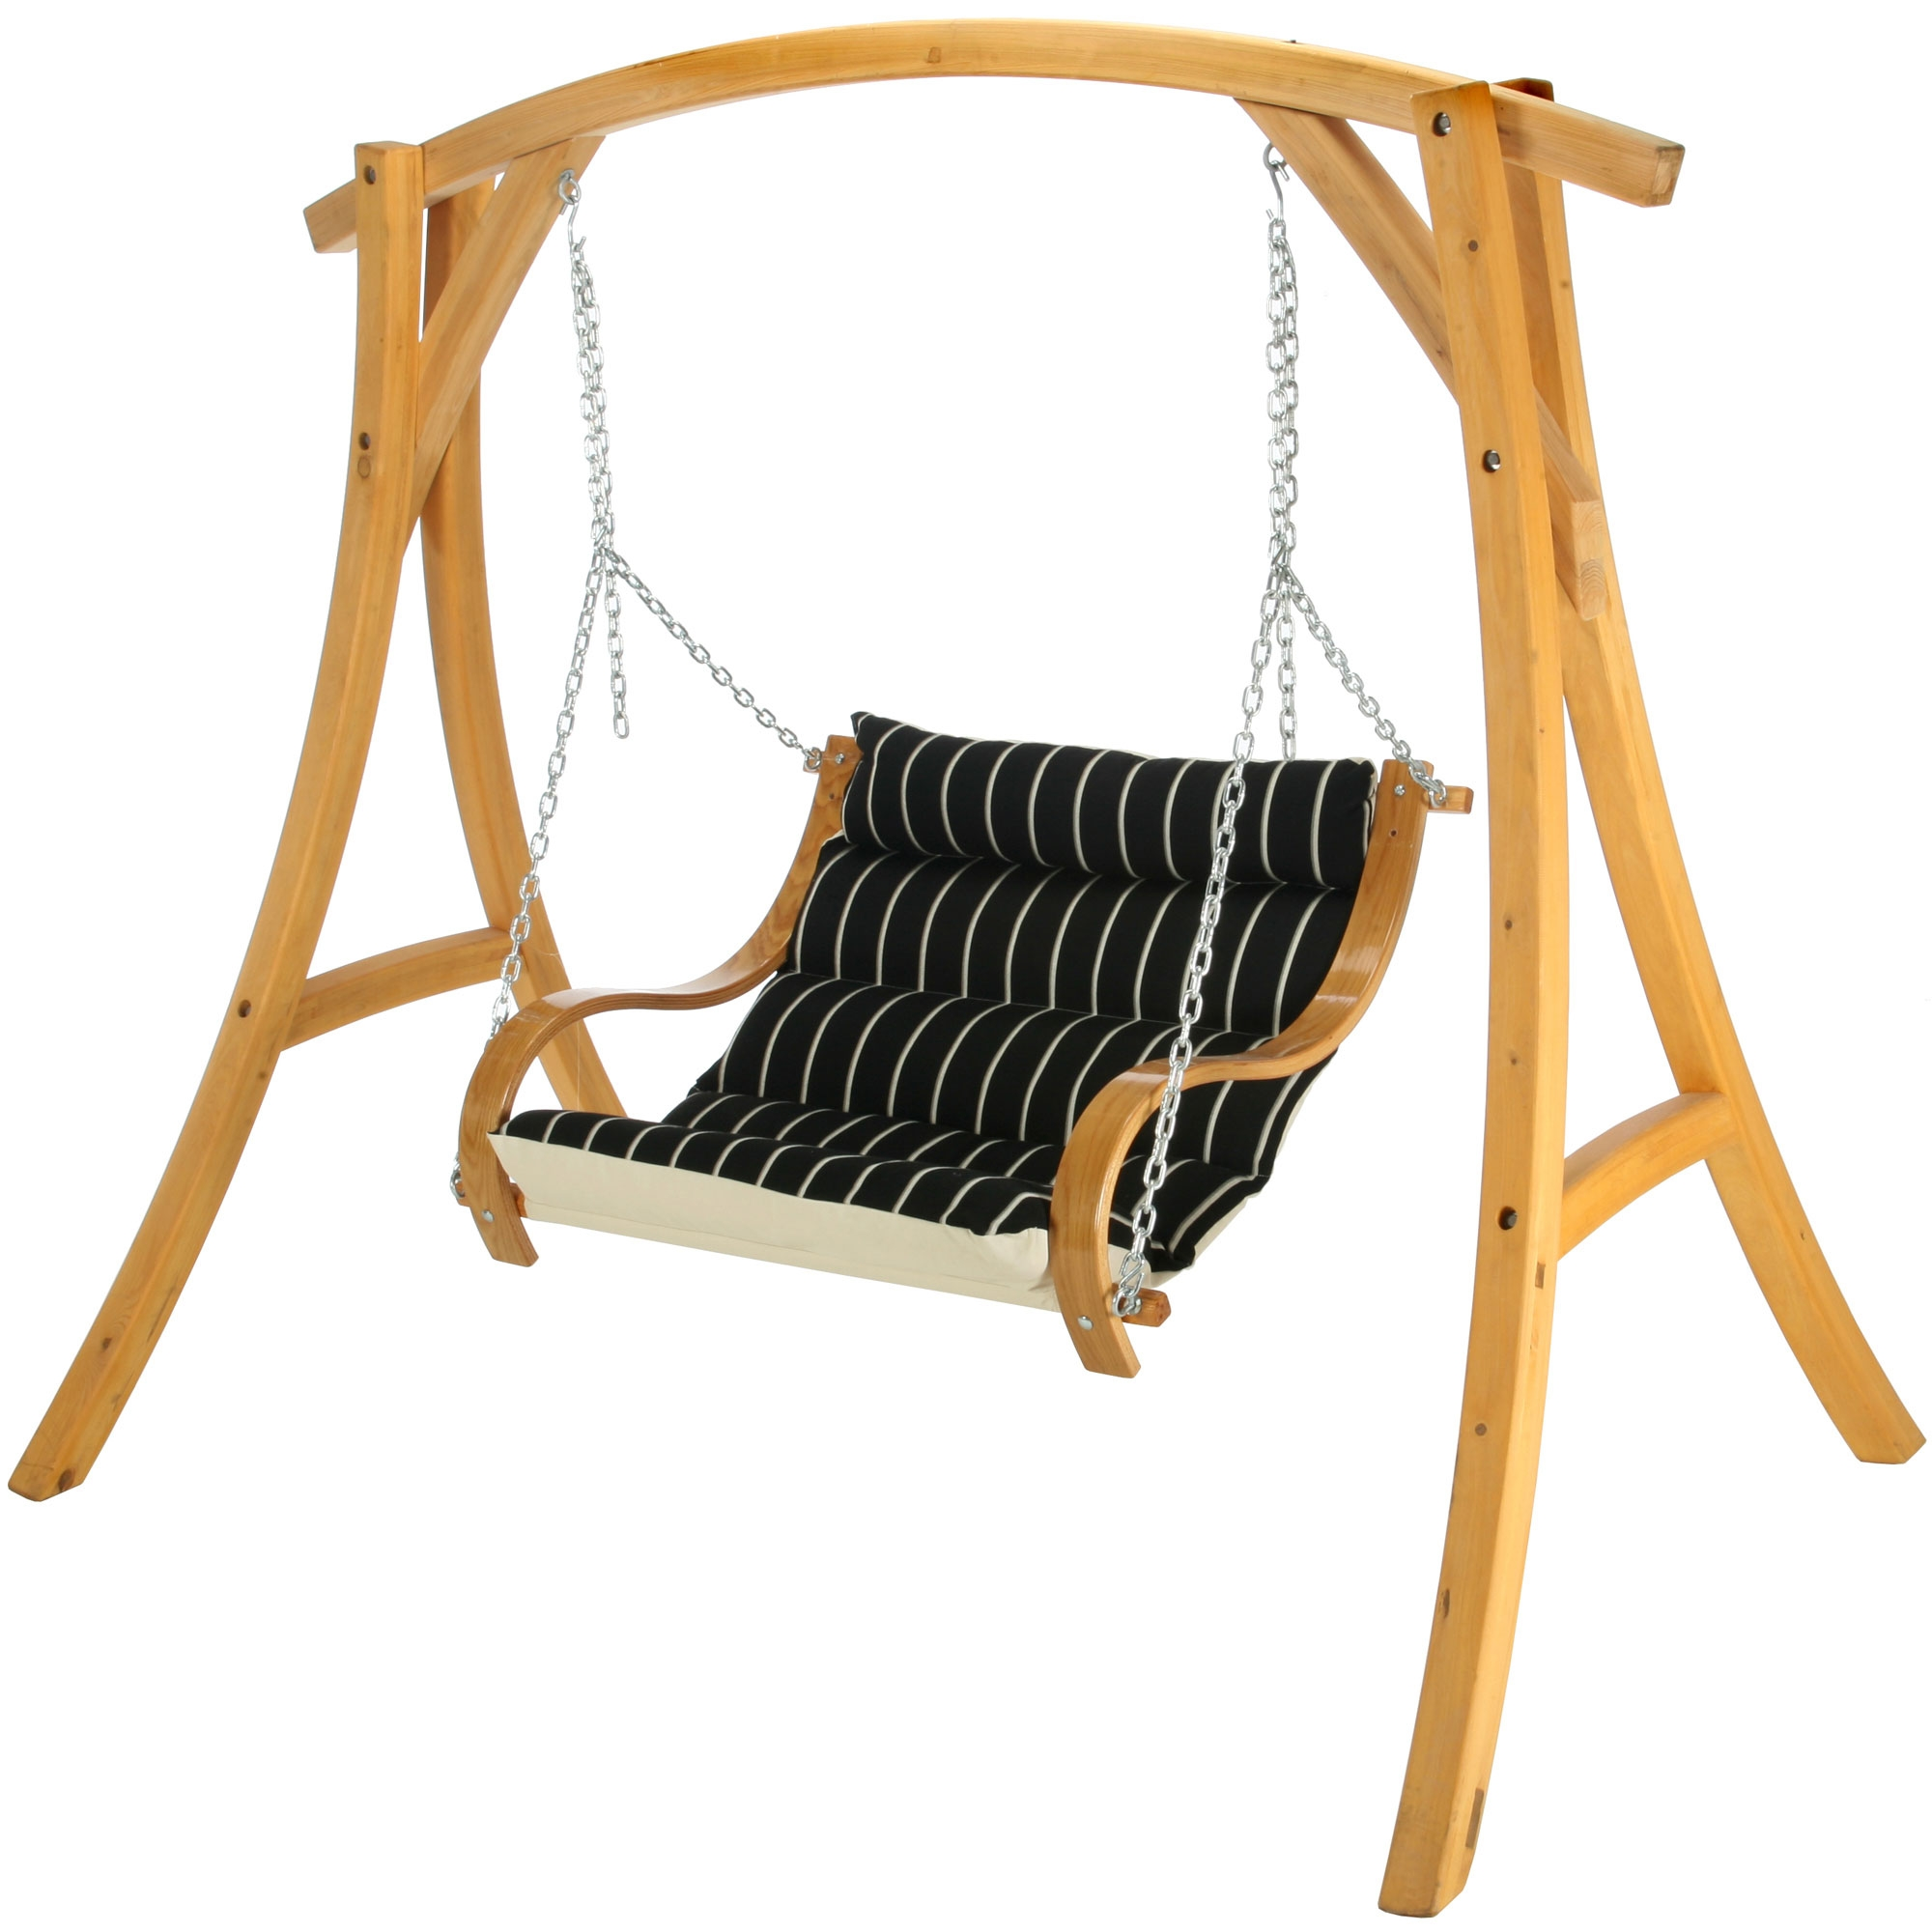 Review: The Best Hammock Chair Stands